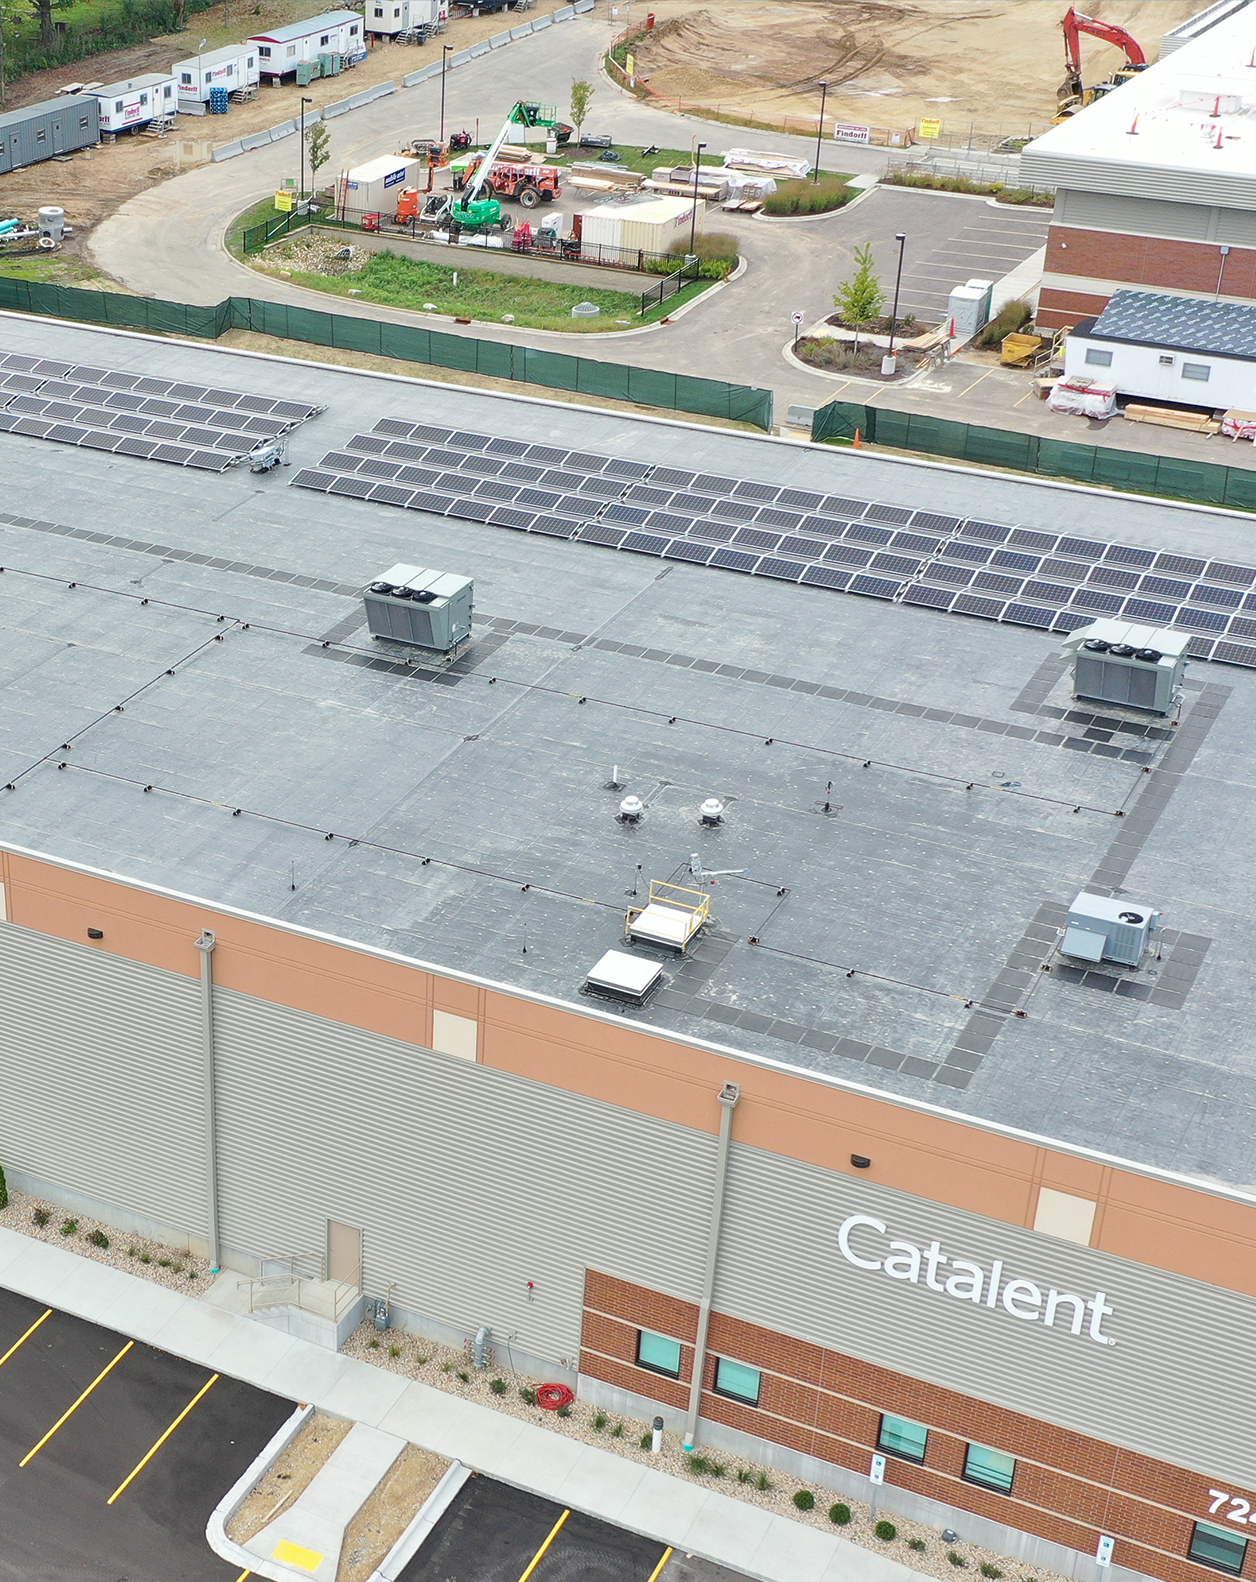 Catalent had SunPeak build a roof-mounted solar PV system